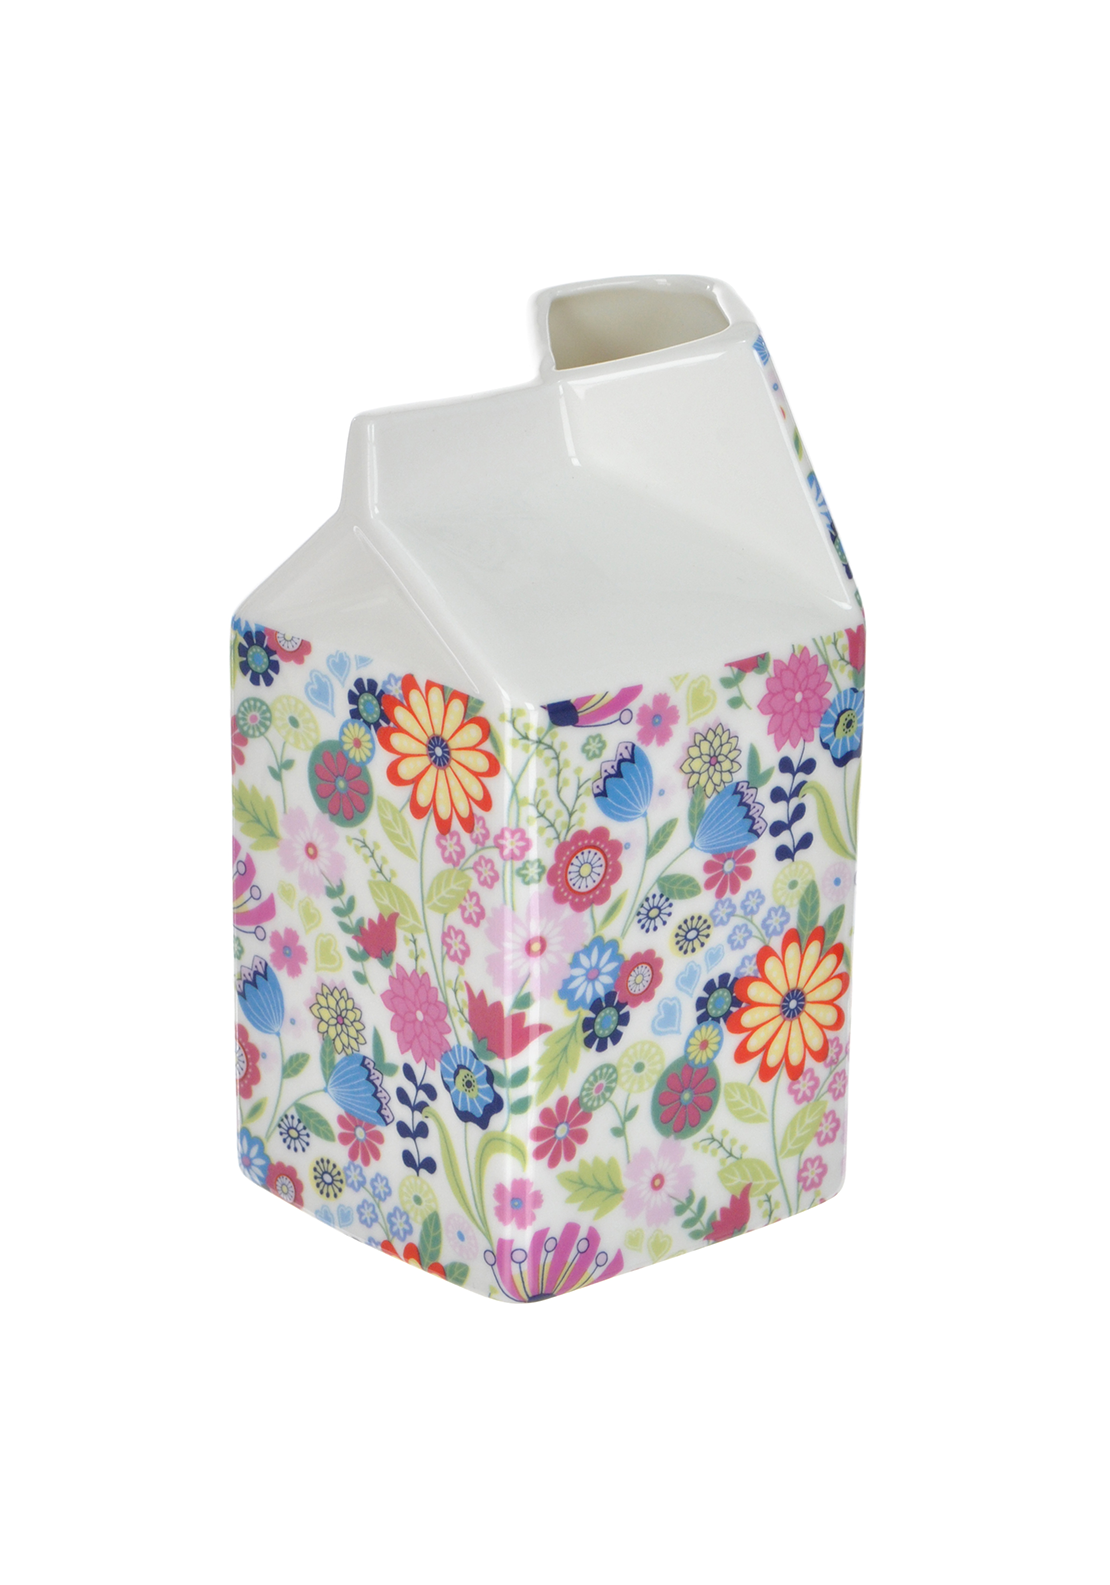 Shannon Bridge Ireland Ditsy Flowery Large Carton, White/Multi Floral Design